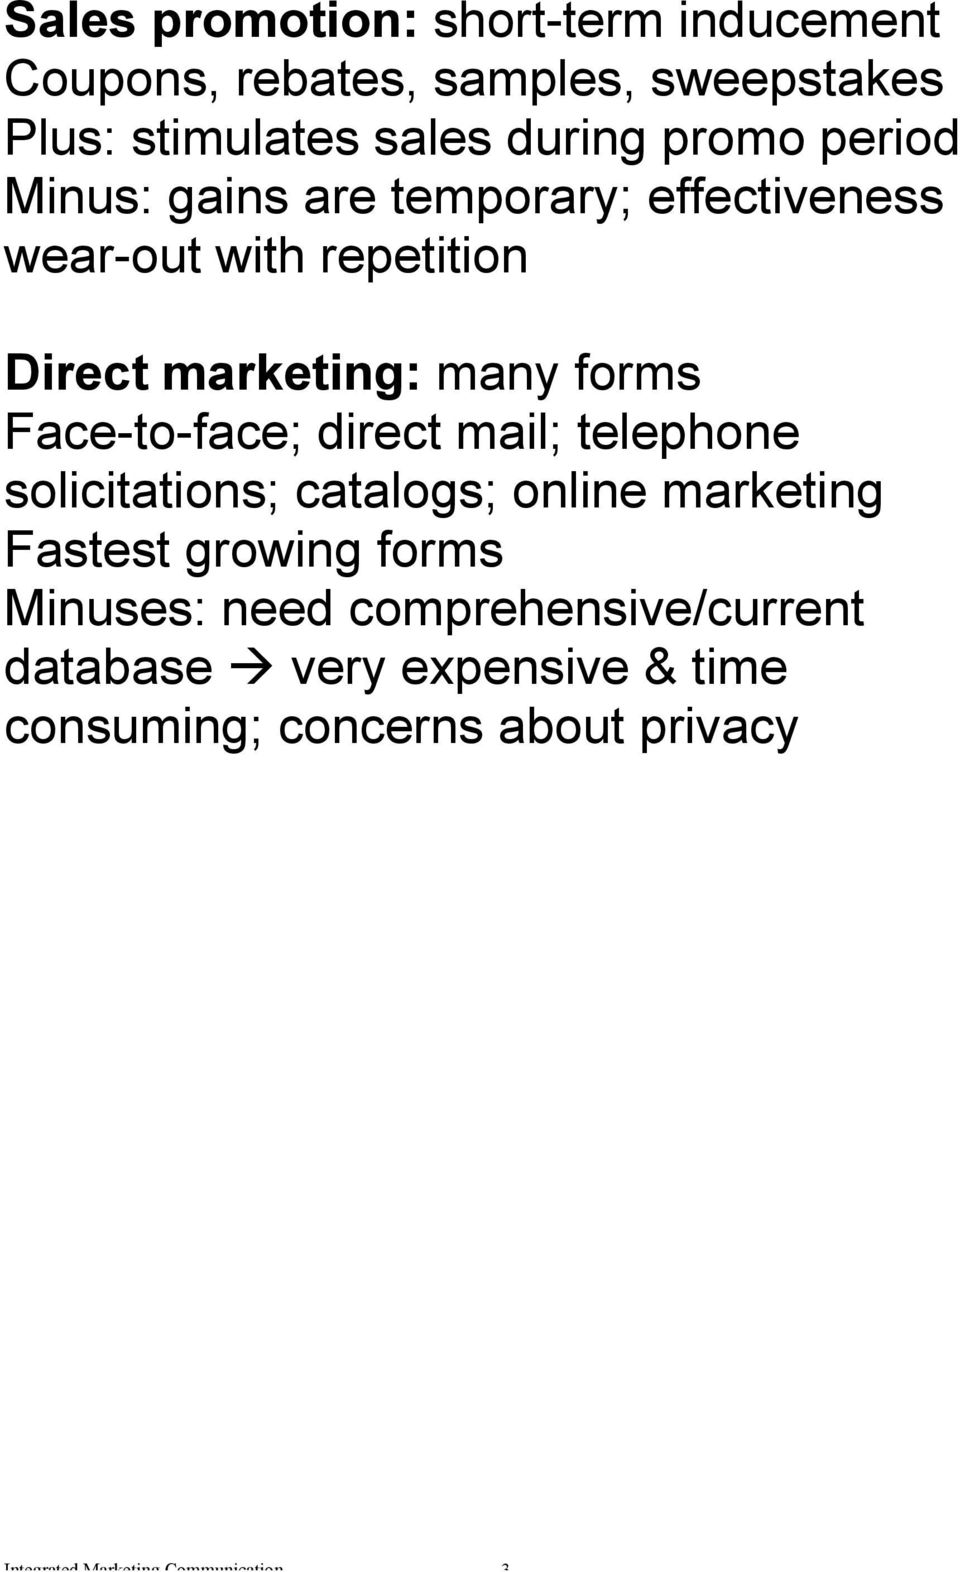 Face-to-face; direct mail; telephone solicitations; catalogs; online marketing Fastest growing forms Minuses: